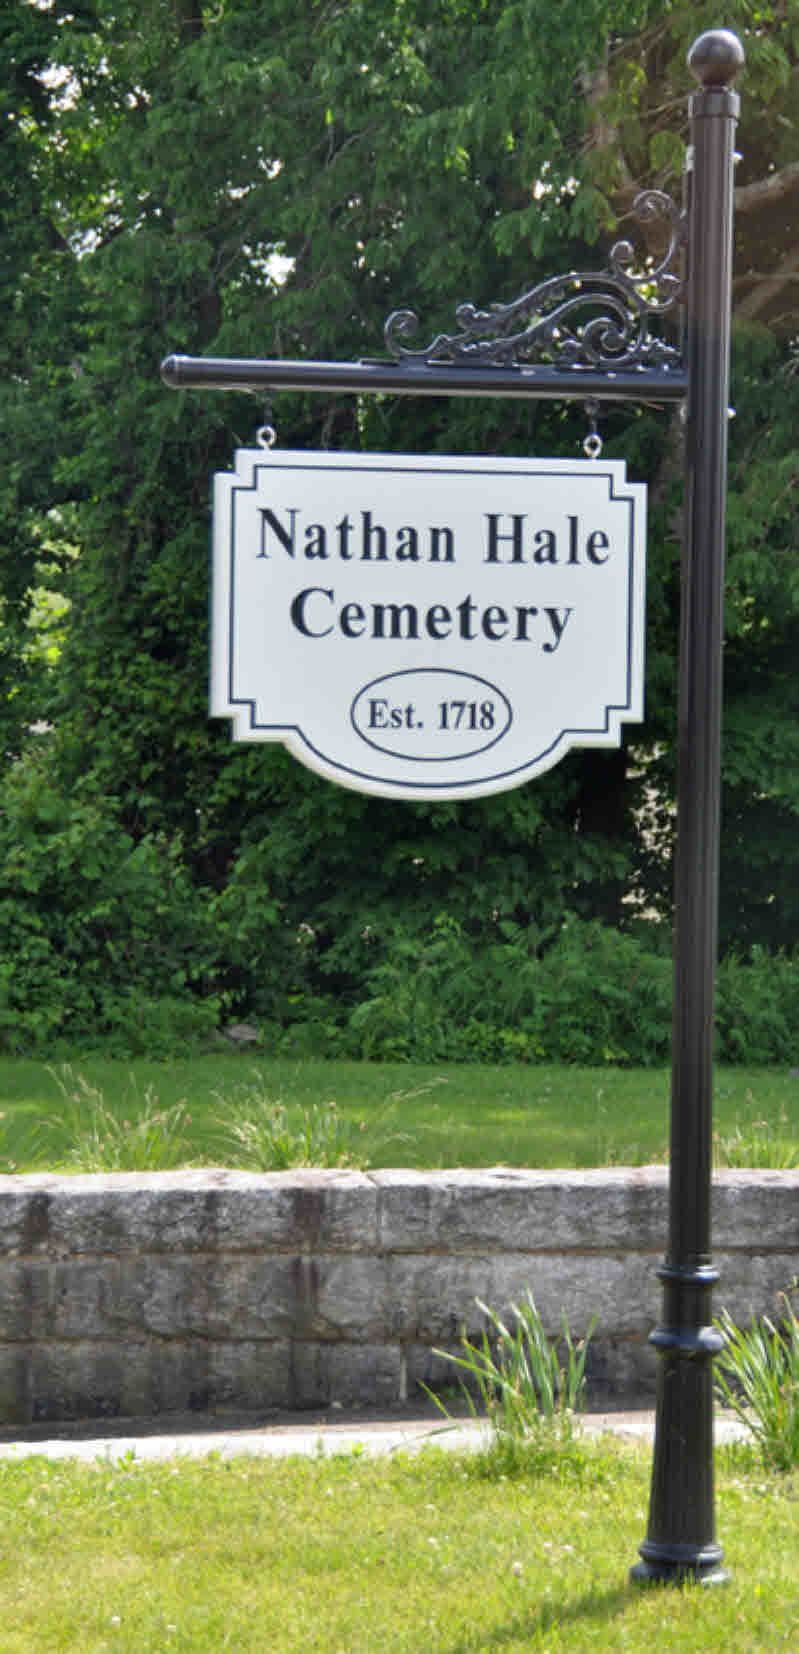 Nathan Hale Cemetery